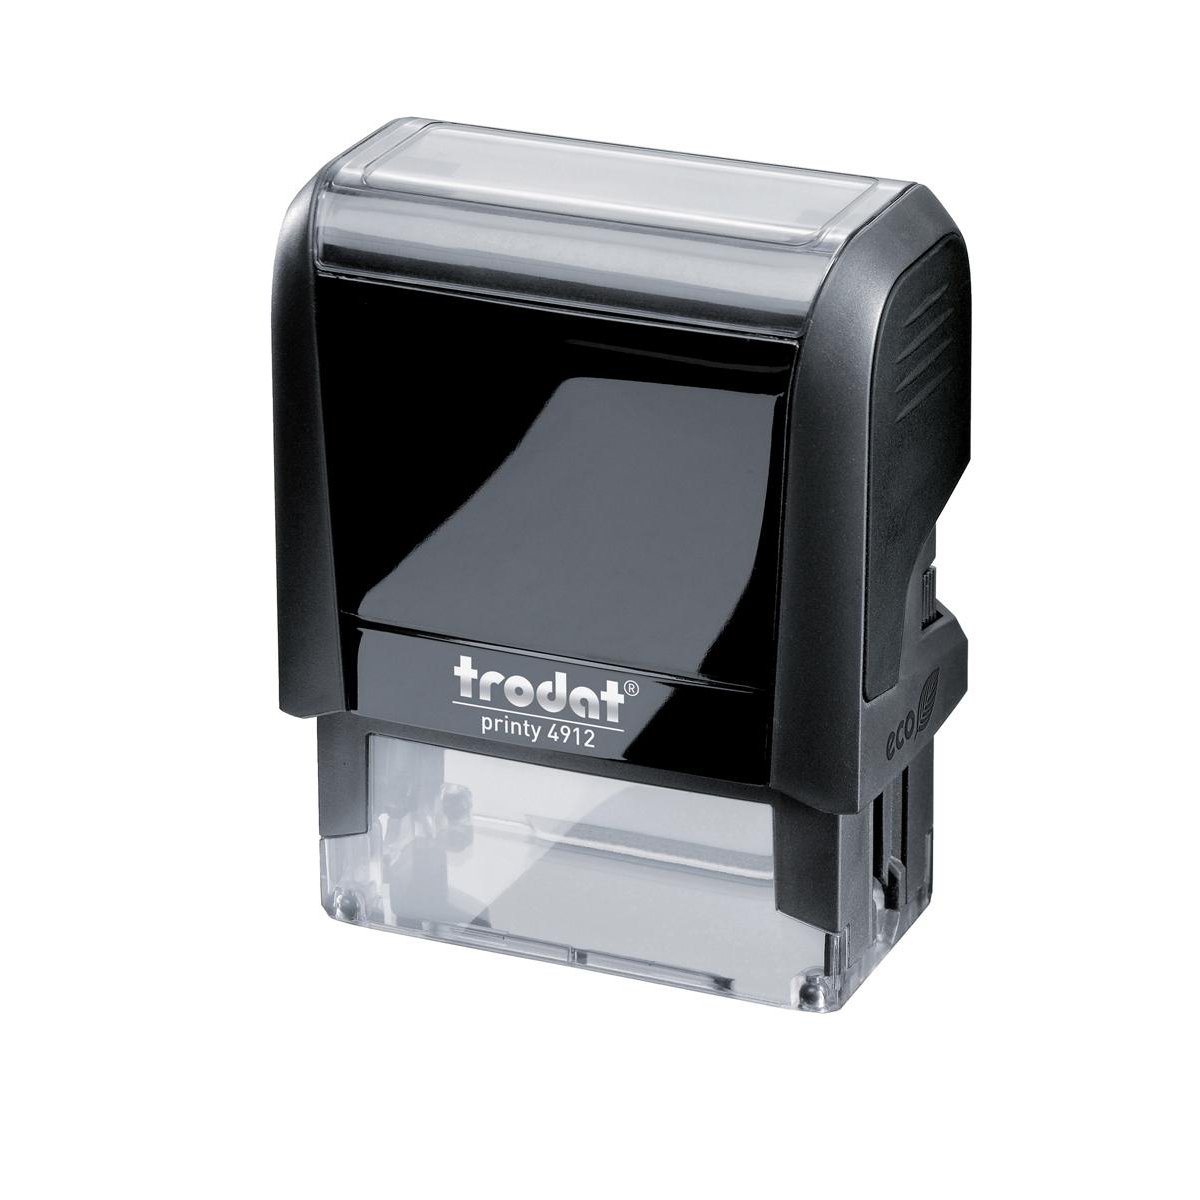 Trodat Printy4912 Custom Stamp Self-Inking Up to 5 lines 46x18mm Ref 199896